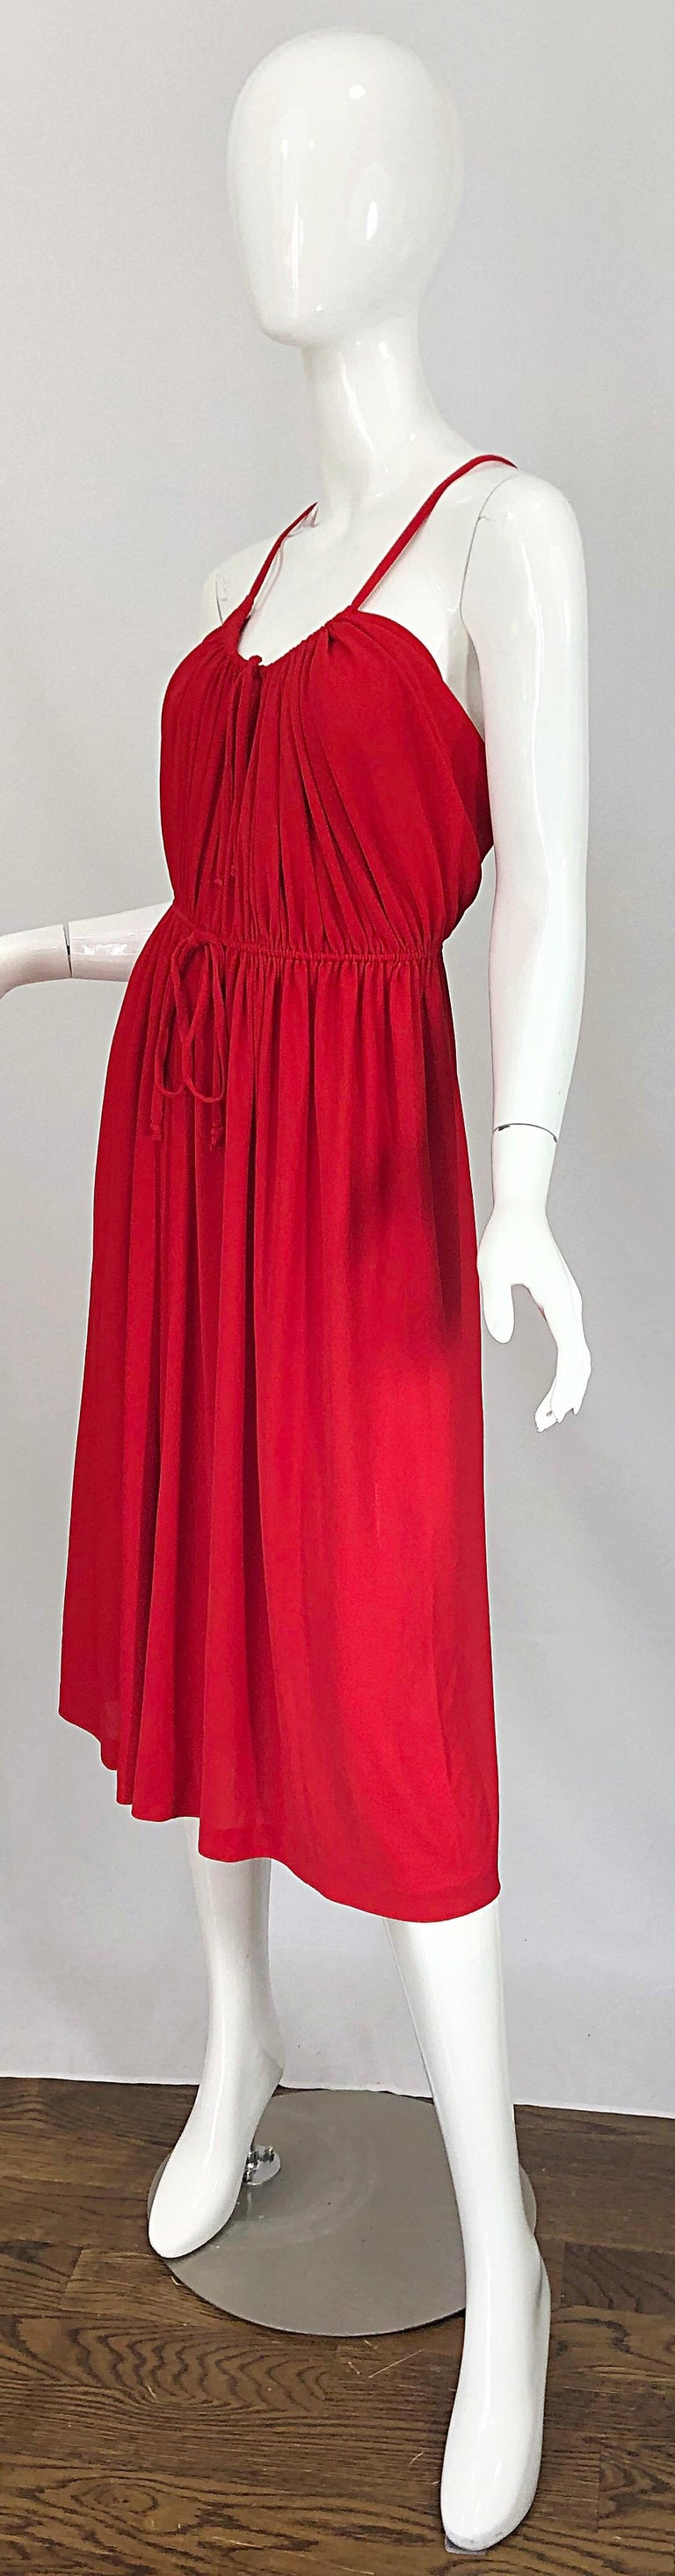 1970s Loris Azzaro Crimson Red Silk Jersey Grecian Inspired Vintage 70s Dress For Sale 8